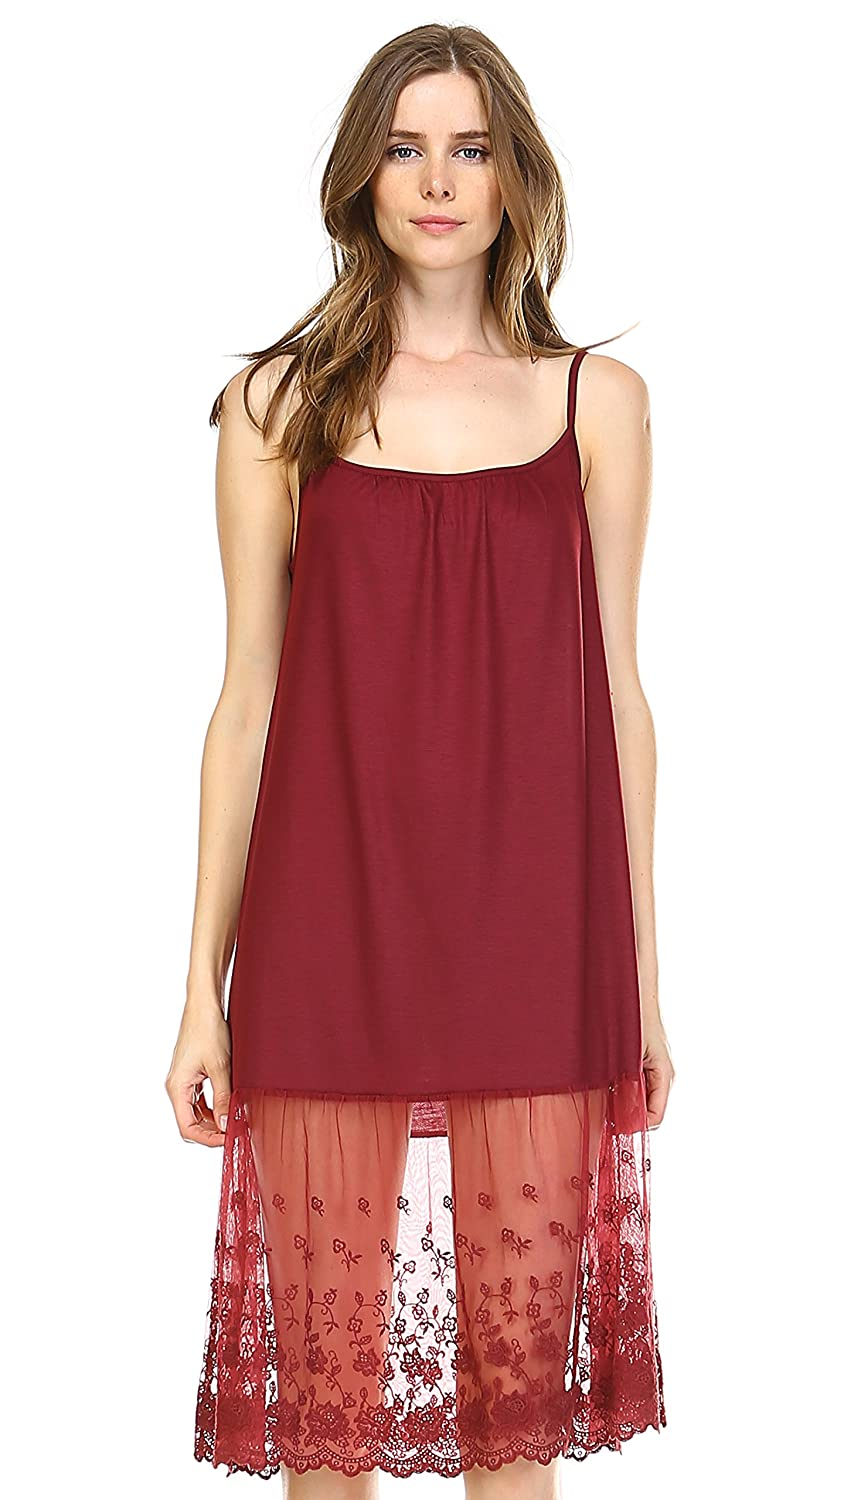 [Shop Lev] Women's Knit Cotton Long Lace Trim Full Slip